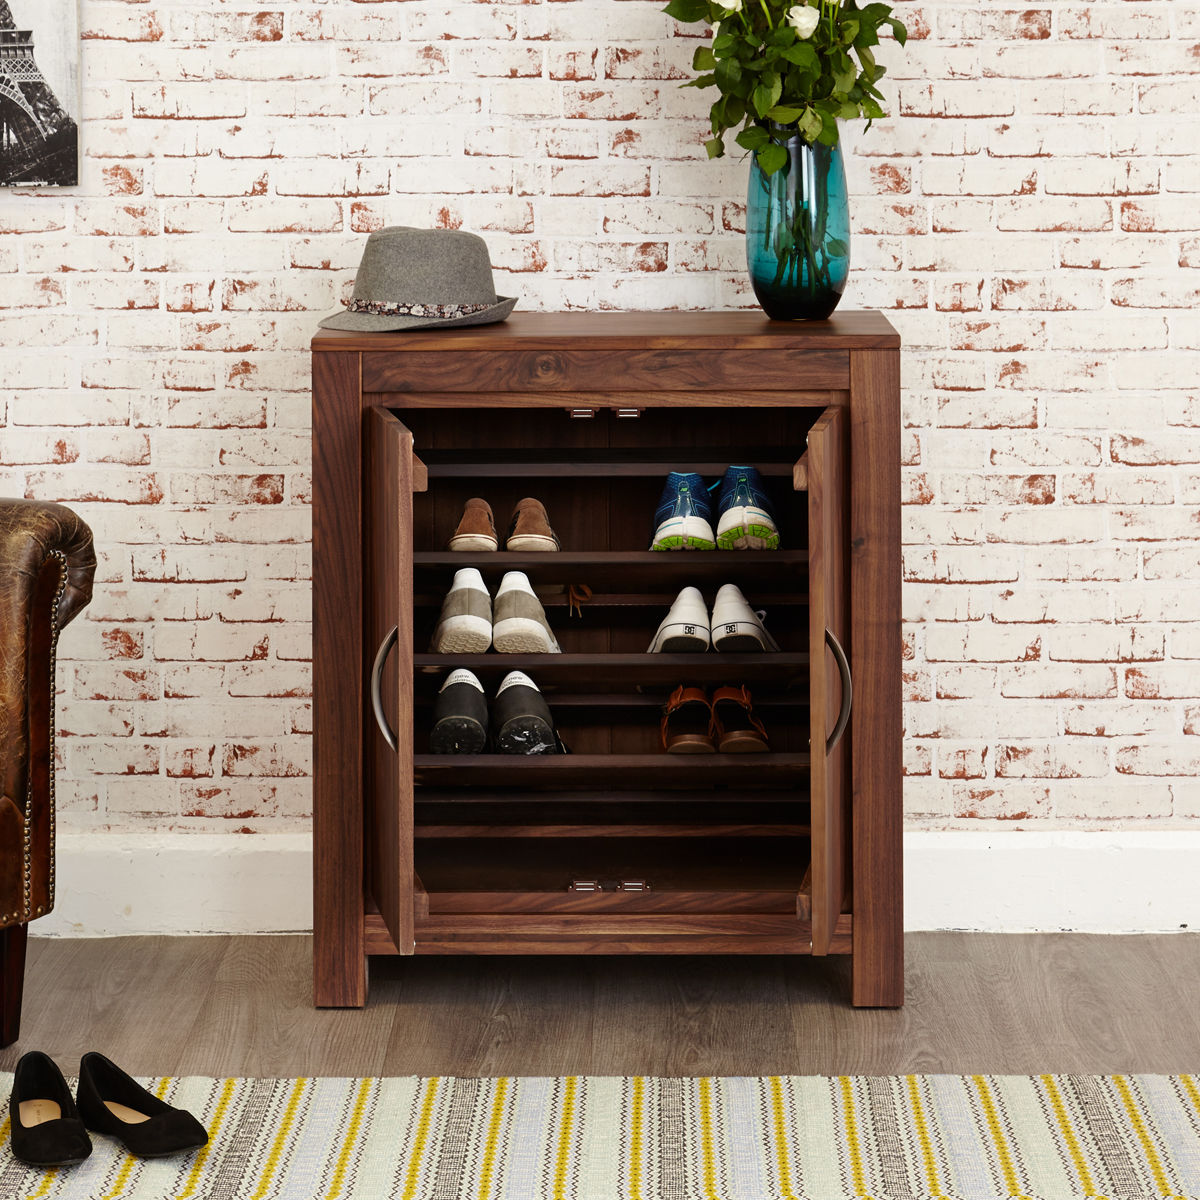 Mayan Walnut Shoe Cupboard Wooden Furniture Store